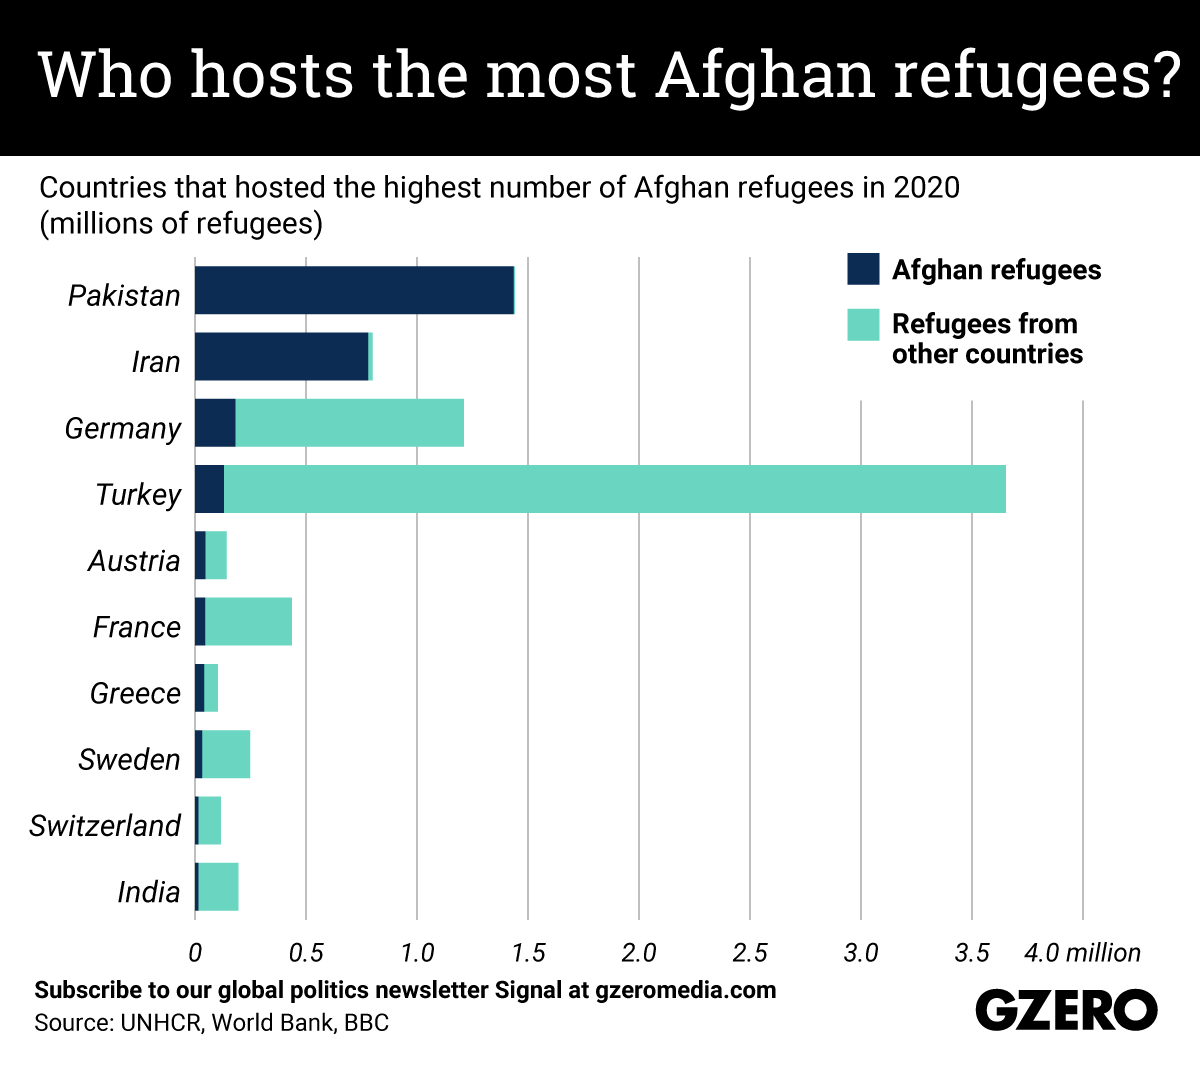 Countries that hosted the highest number of Afghan refugees in 2020 (millions of refugees)